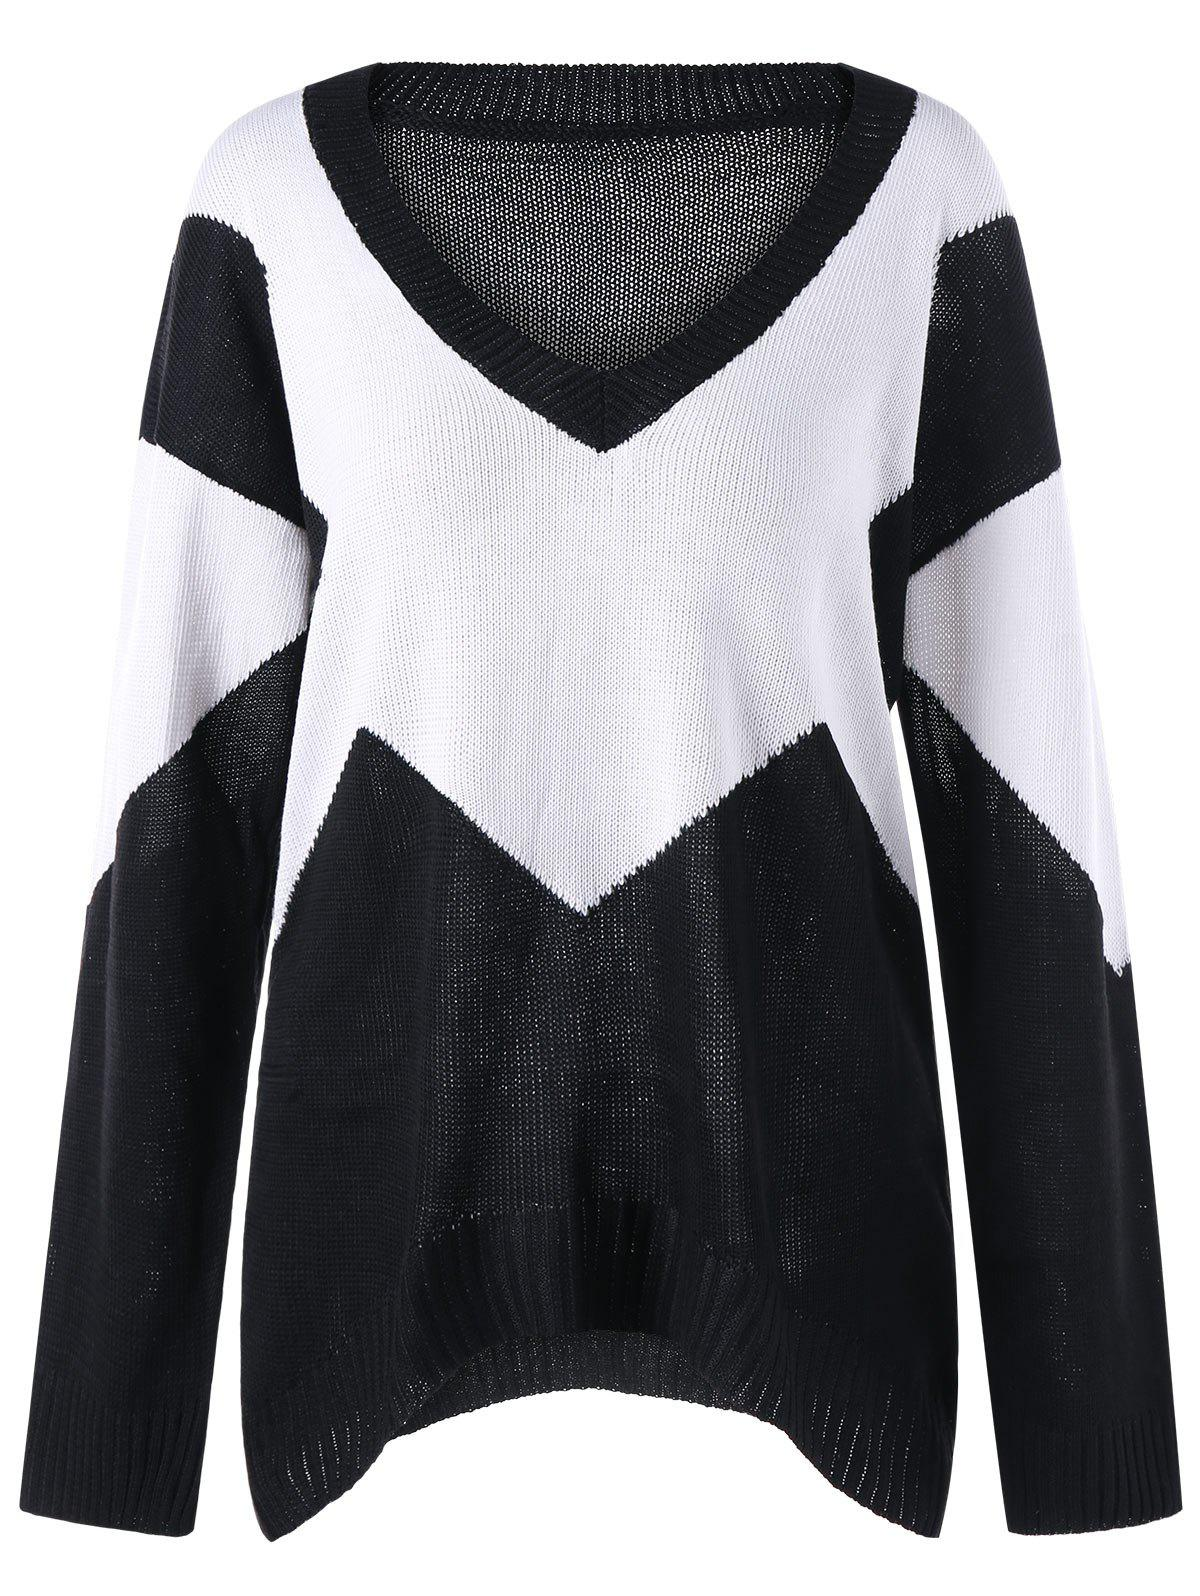 Two Tone Open Knit V Neck Sweater bar iii new black white women s xl marled open knit scoop neck sweater $79 439